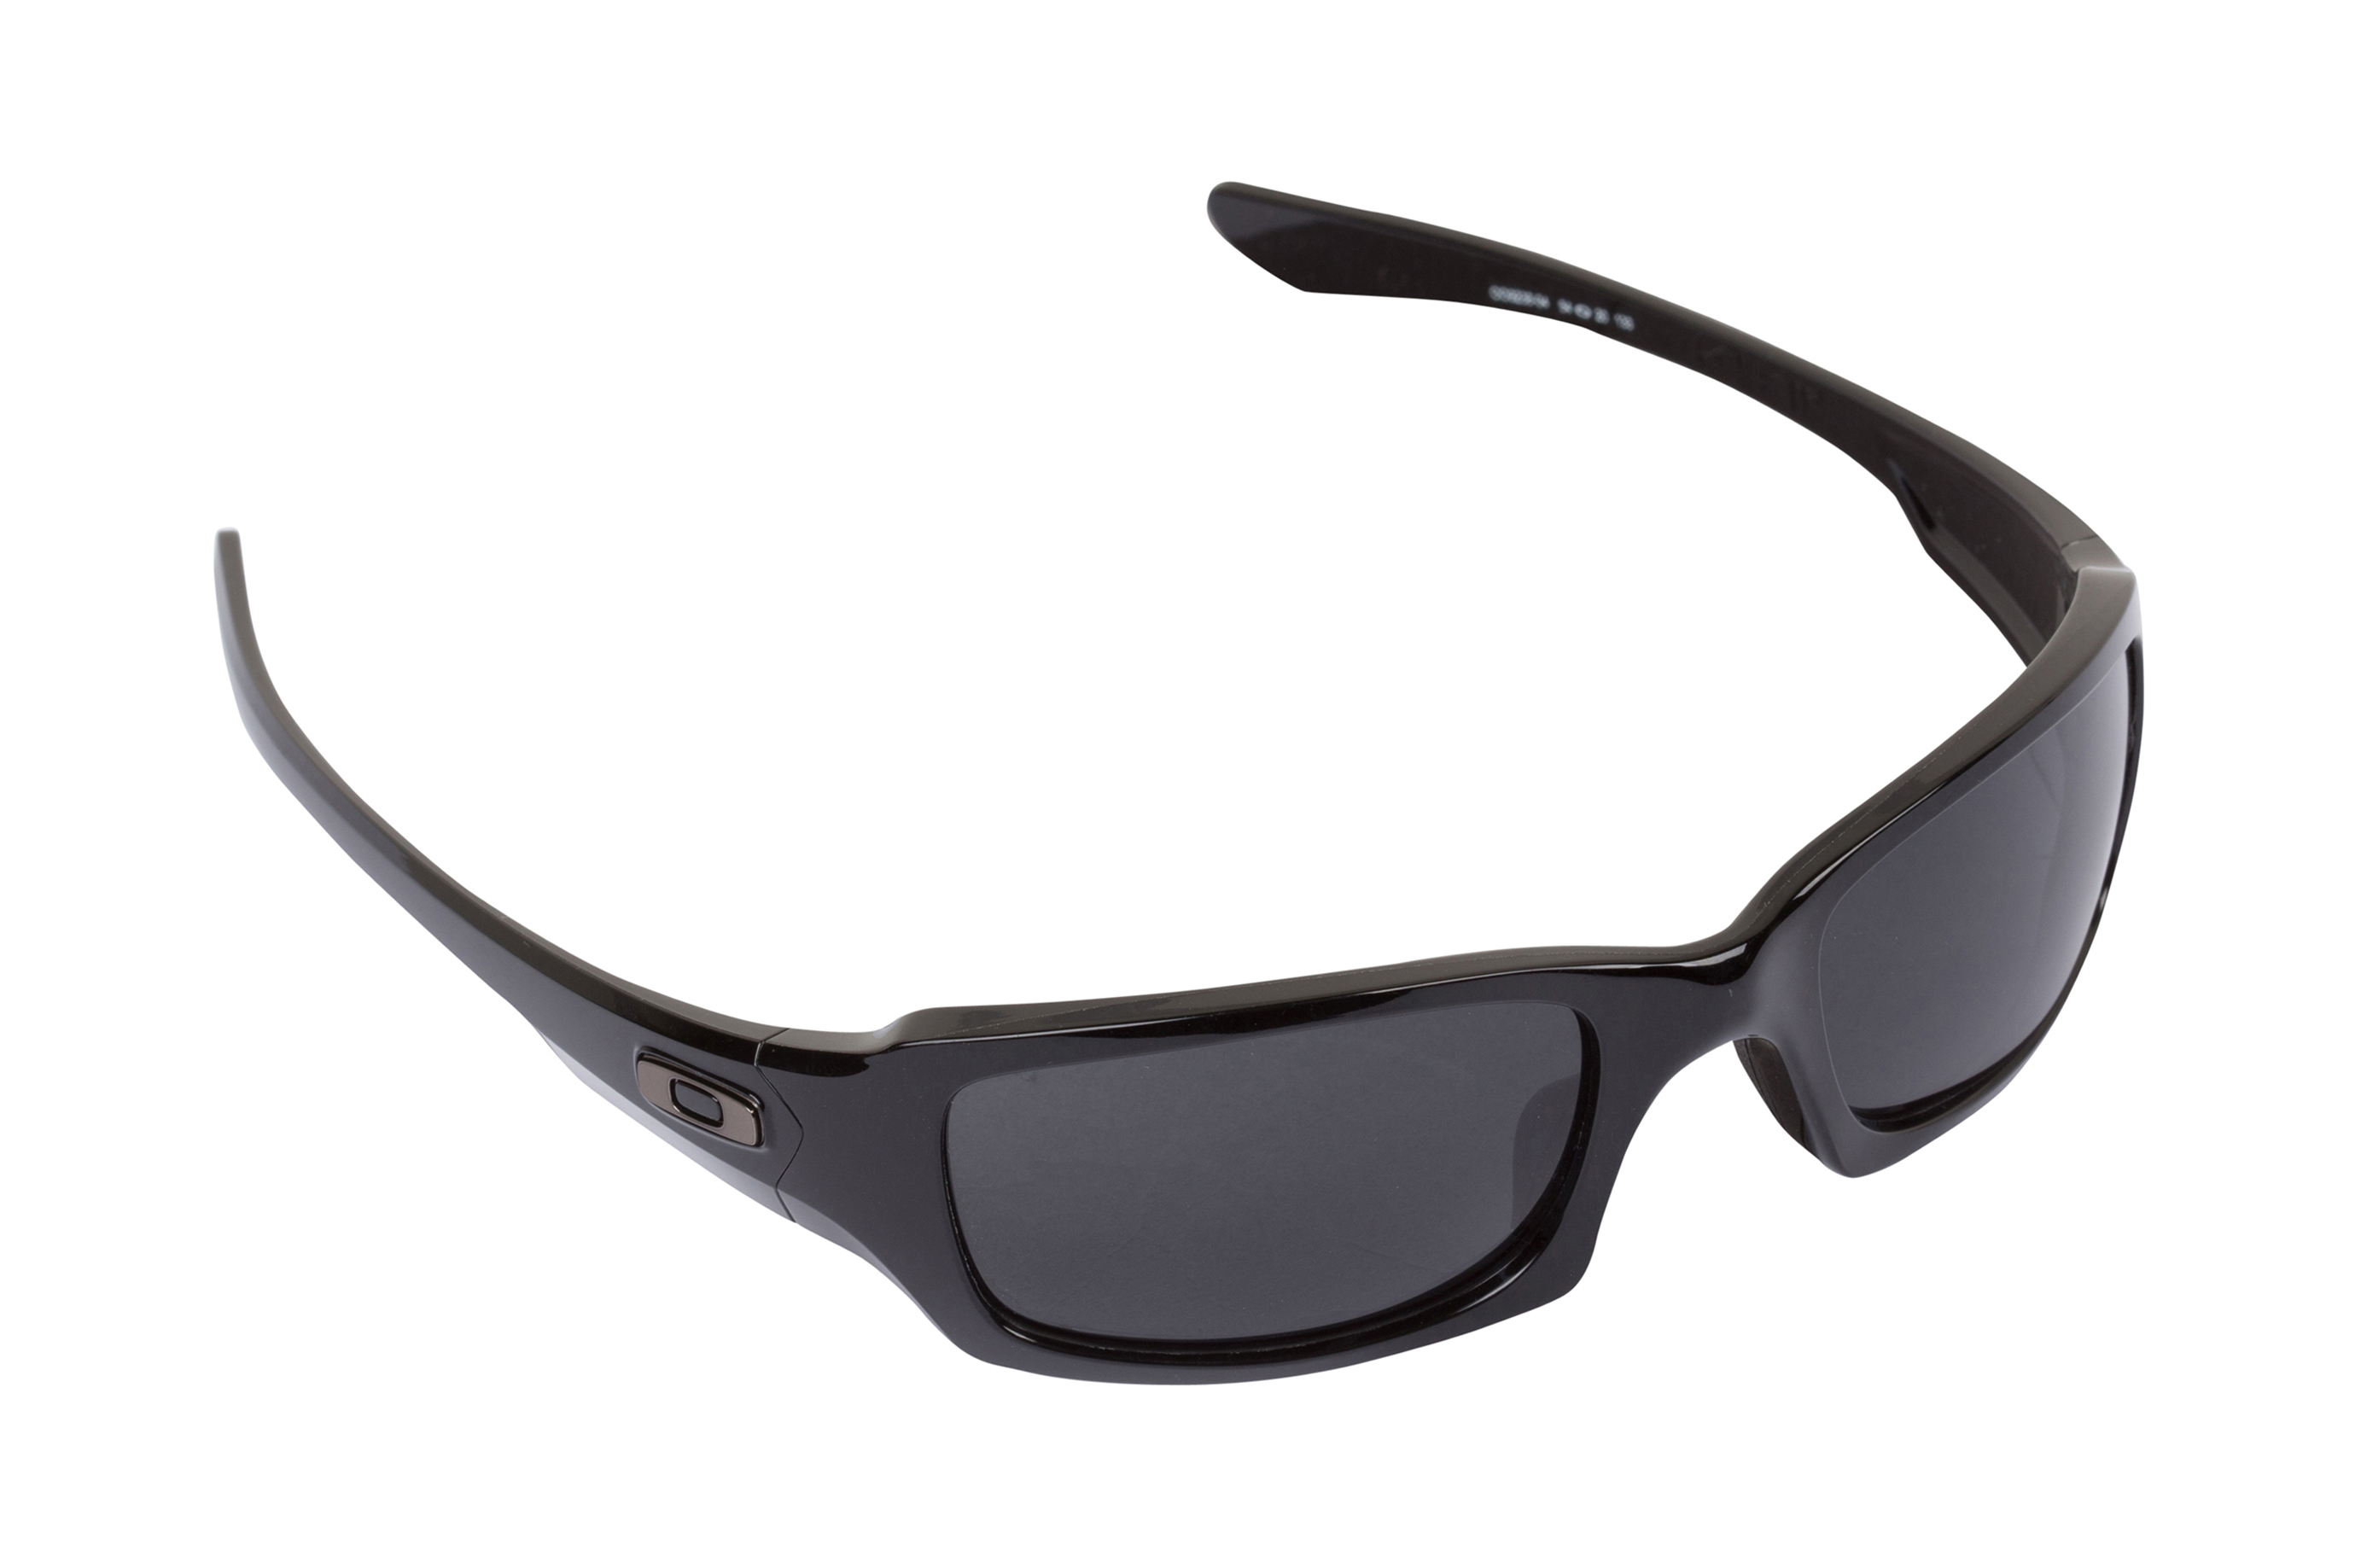 61266ab9e7 Oakley Fives Squared Replacement Lenses Amazon